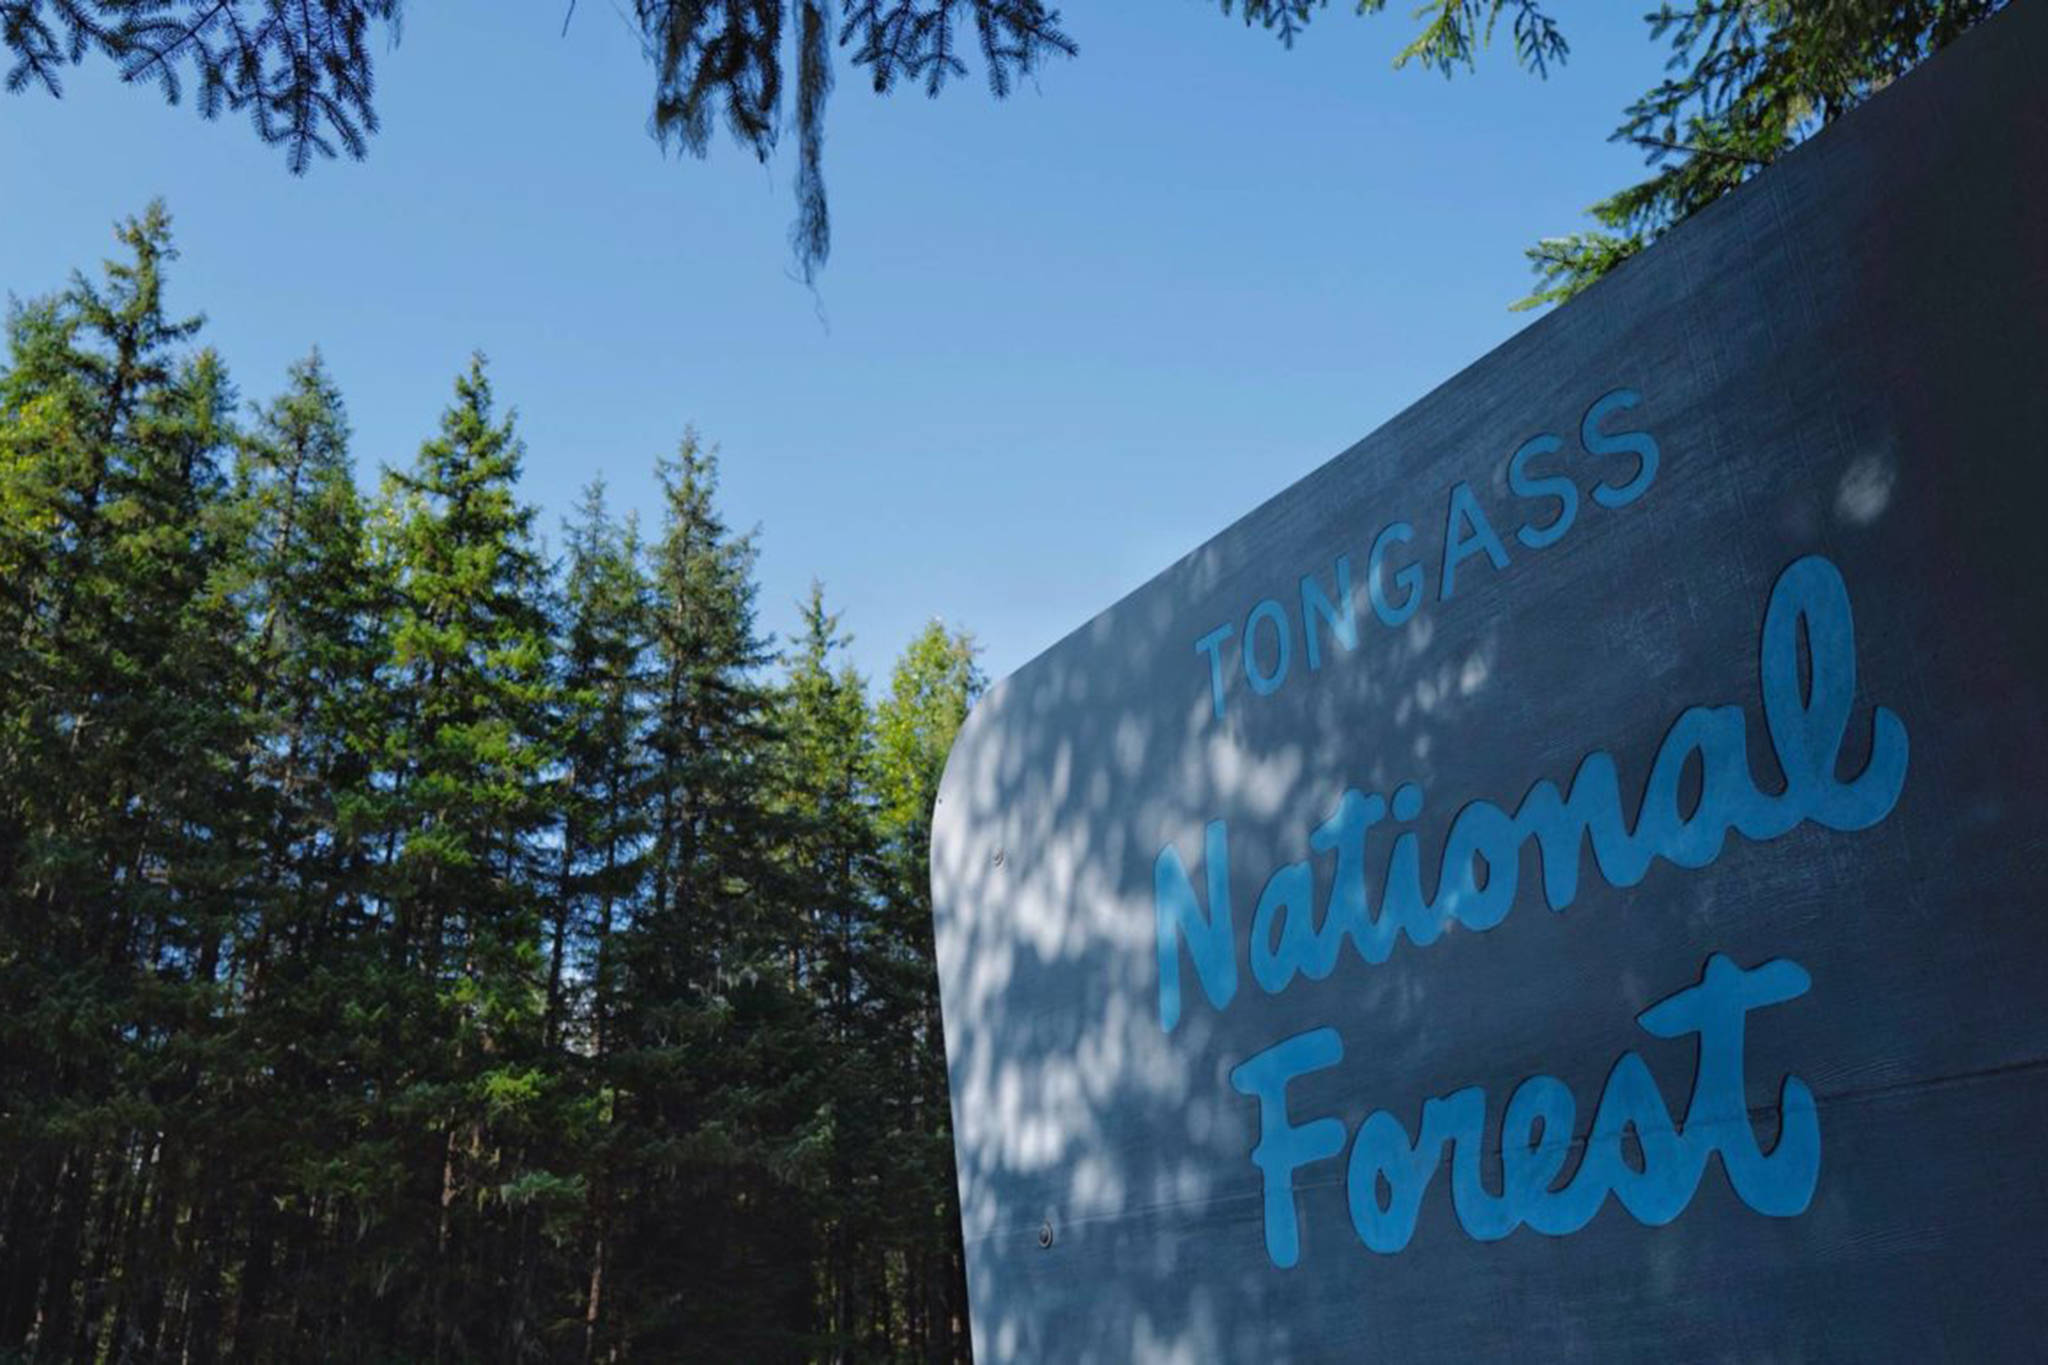 The Tongass National Forest sign seen en route to the Mendenhall Glacier Visitor Center on Wednesday, Aug. 28, 2019. (Michael Penn / Juneau Empire File)